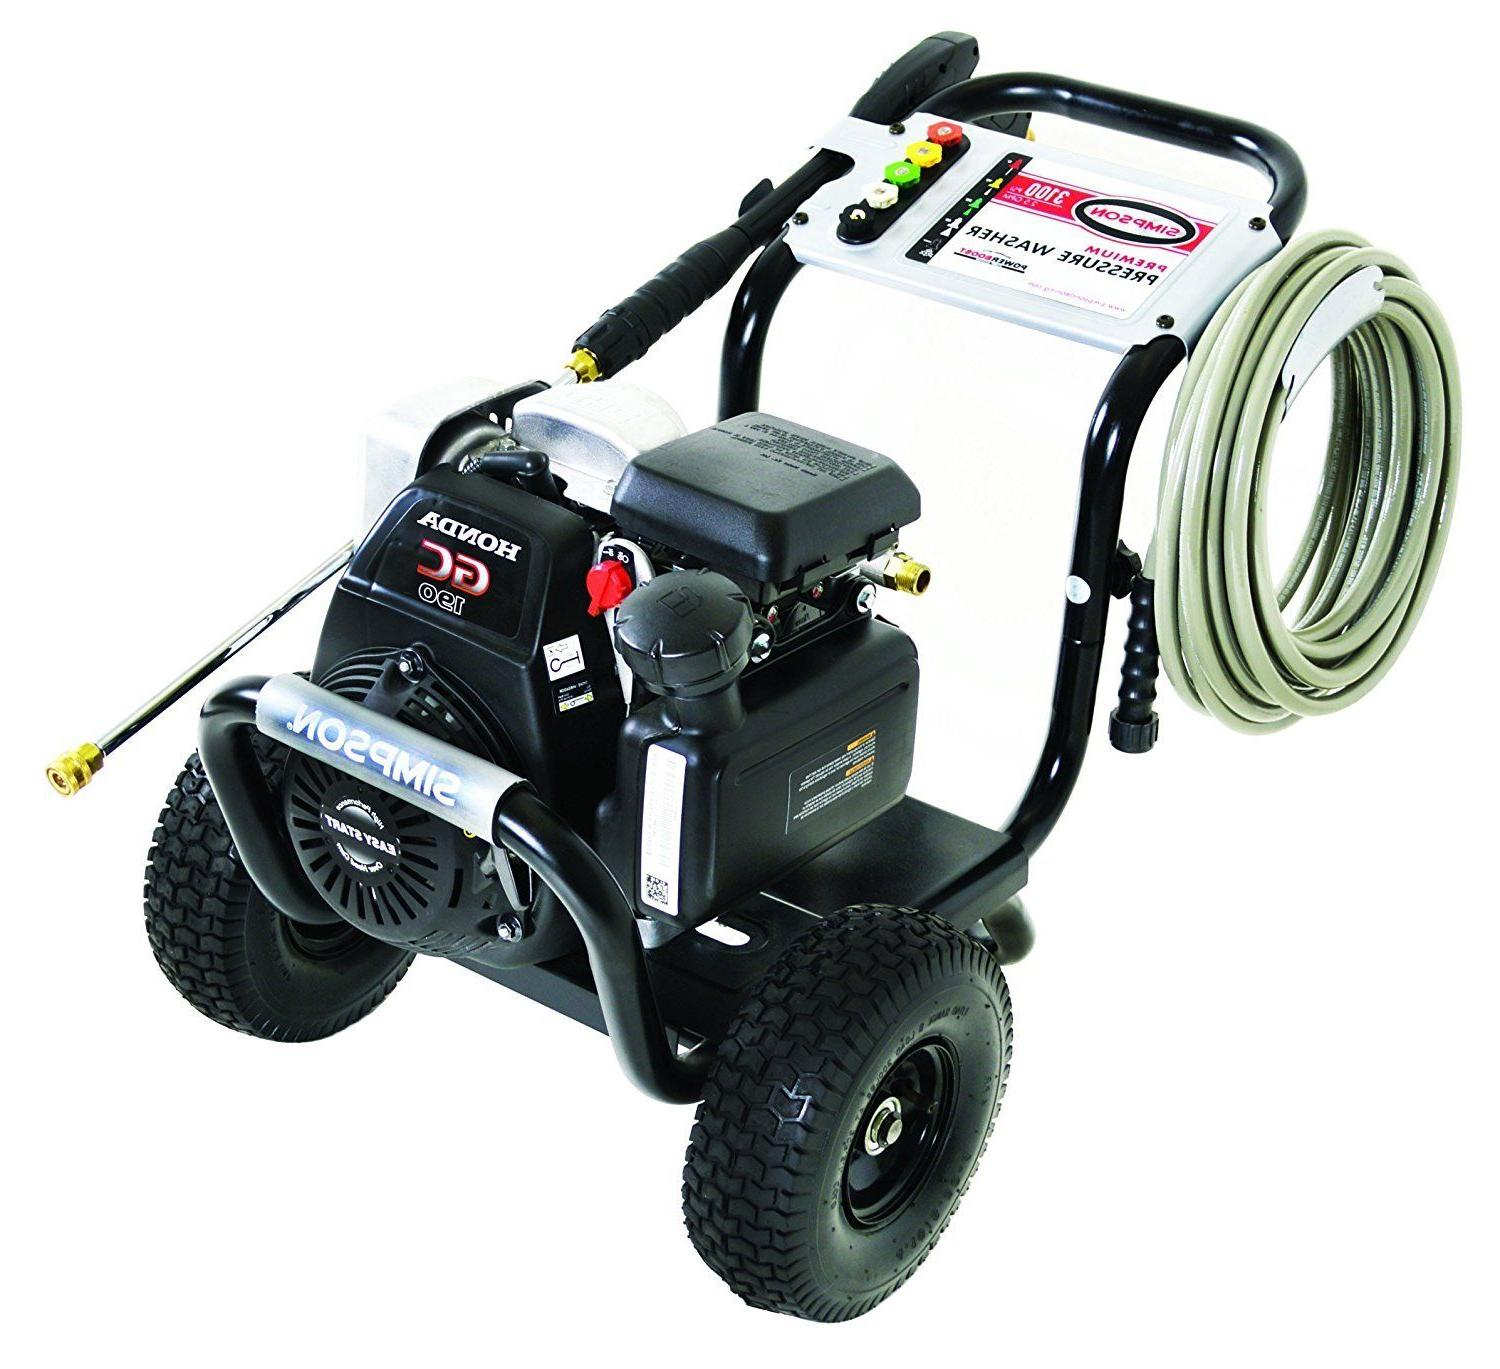 Simpson 2.5 GPM Gas Pressure Washer Cleaner Machine Power by